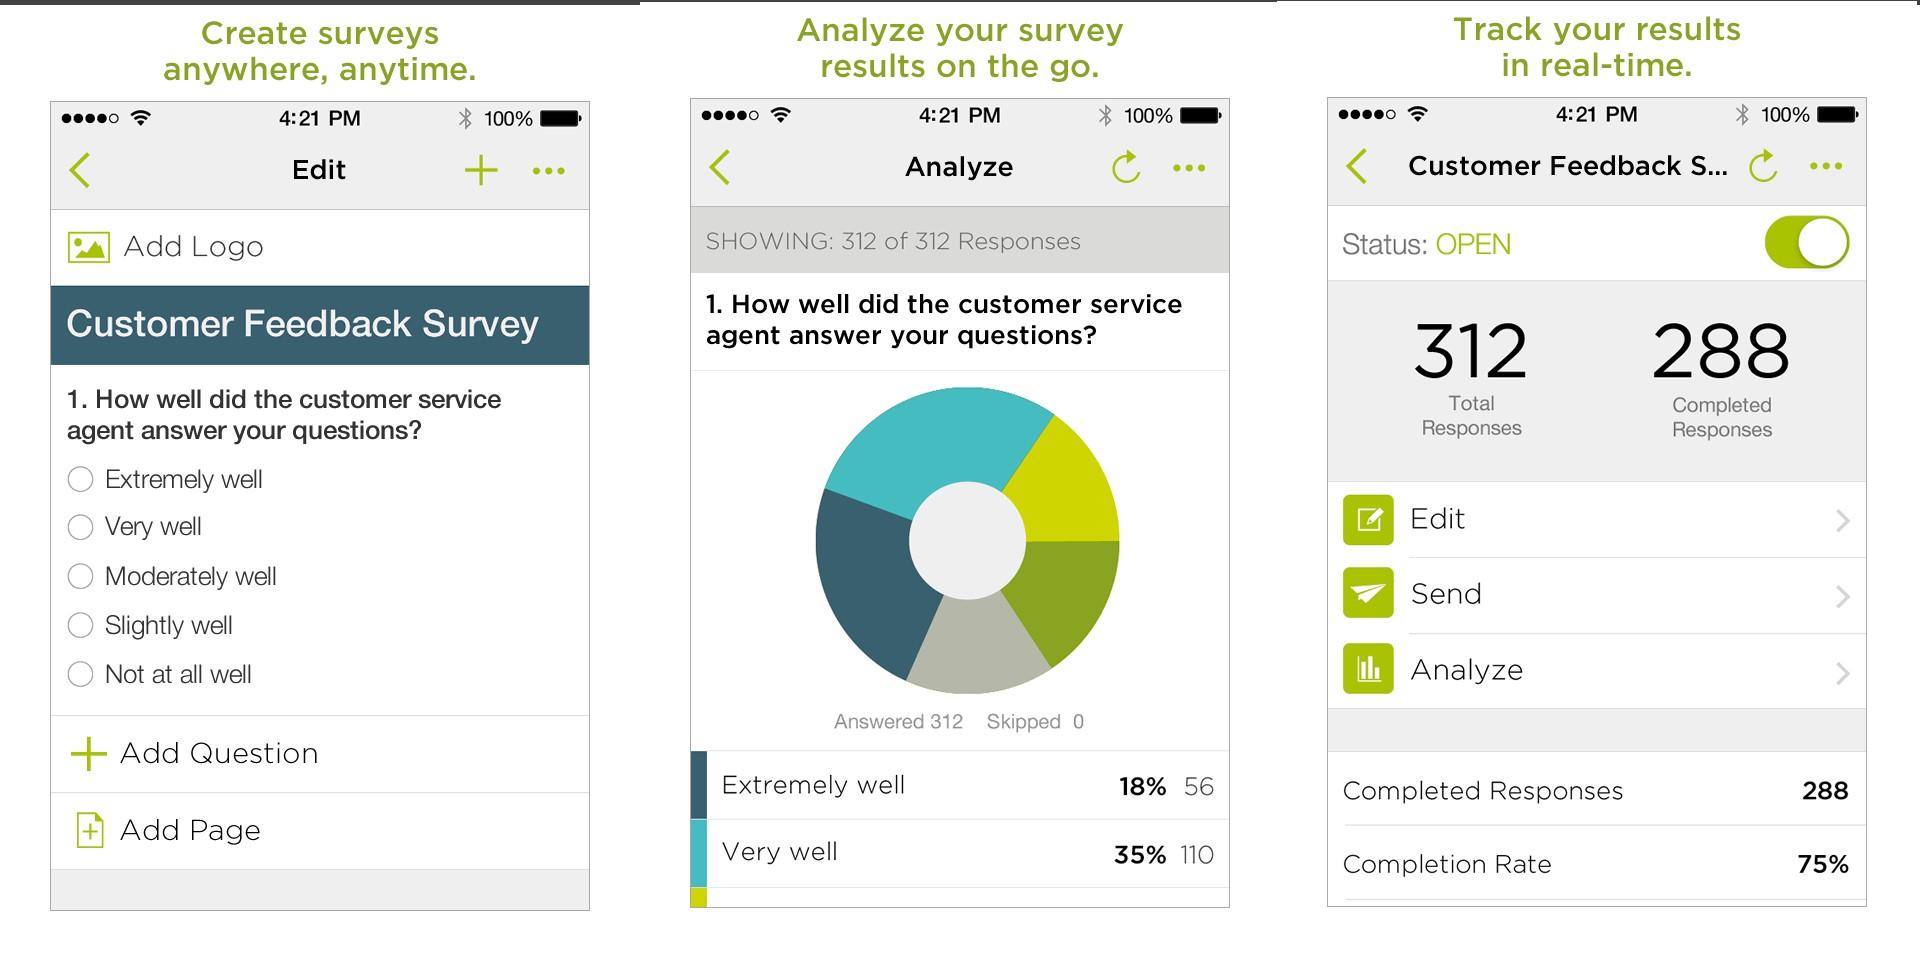 surveymonkeys mobile version allows you to create surveys and track results on the go